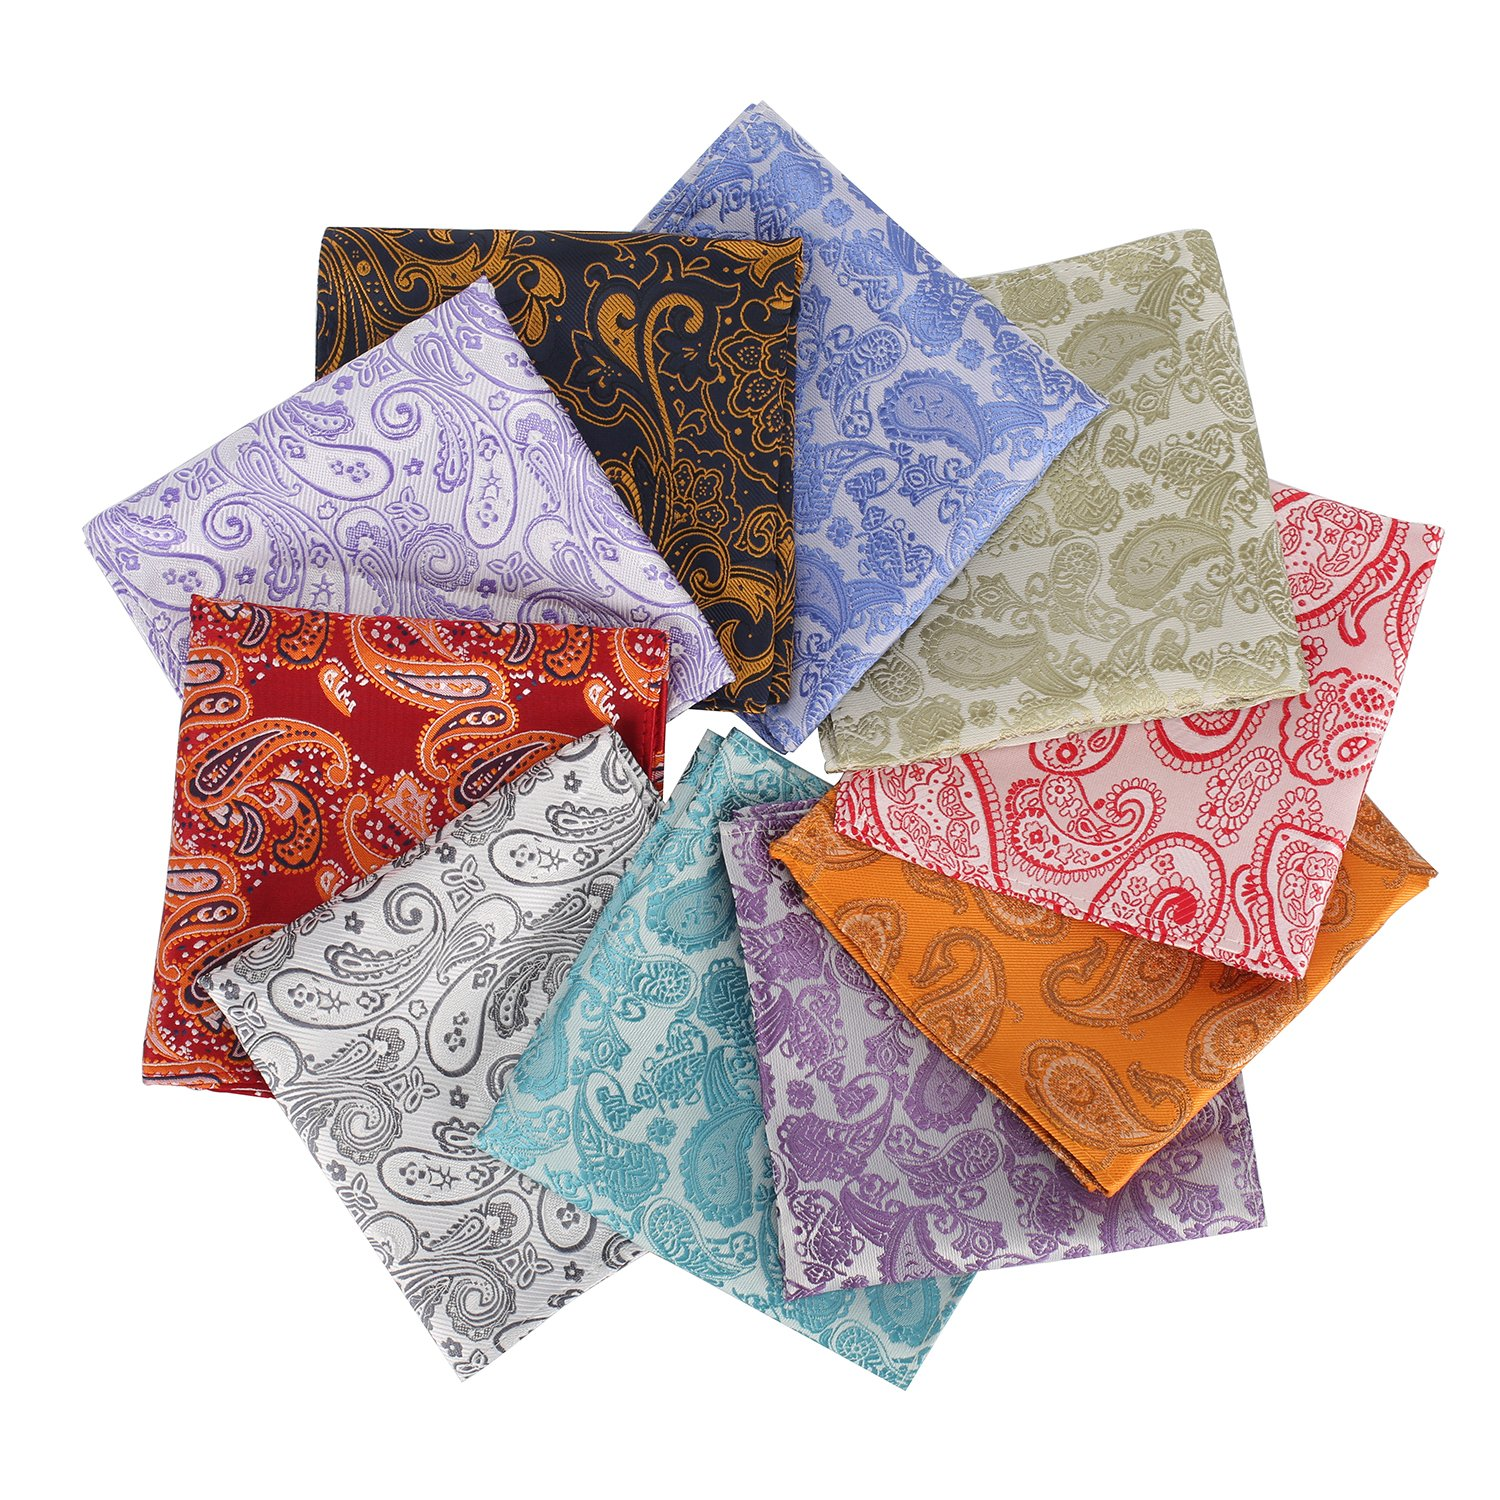 Mens 10 Pack Assorted Pocket Square Handkerchief Hanky (D5)